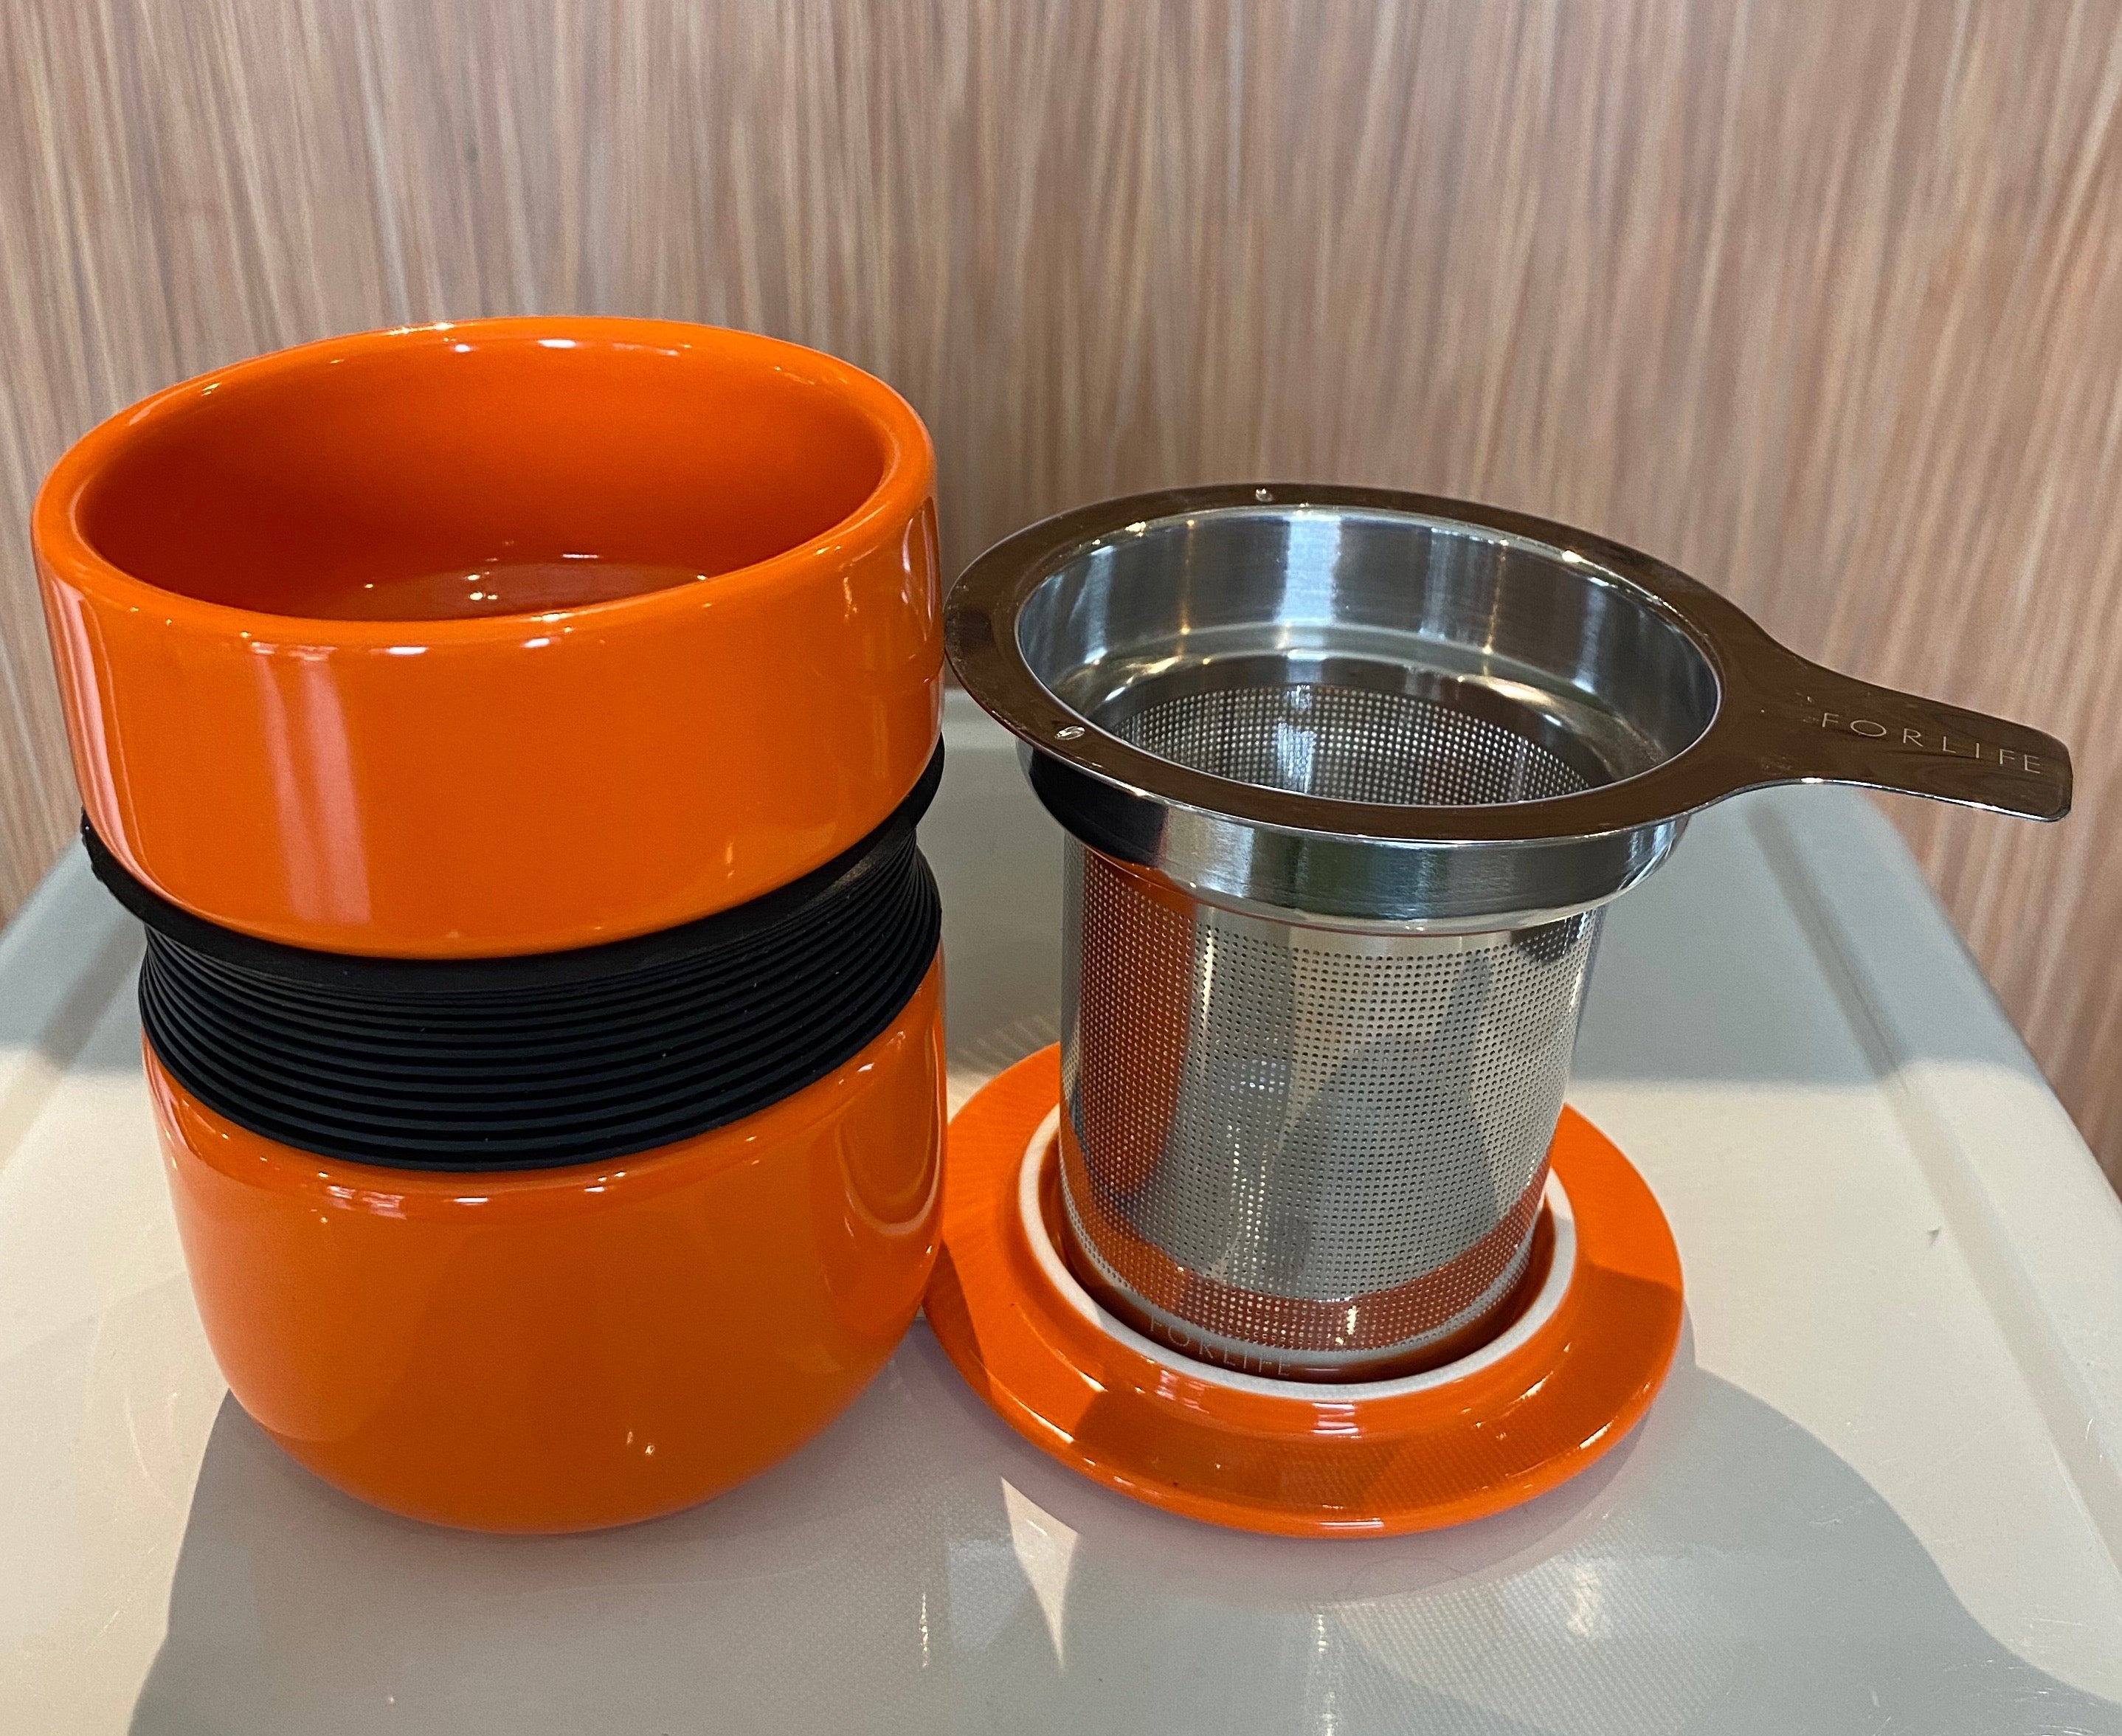 Carrot Asian style tea mug with infuser & lid, For Life brand